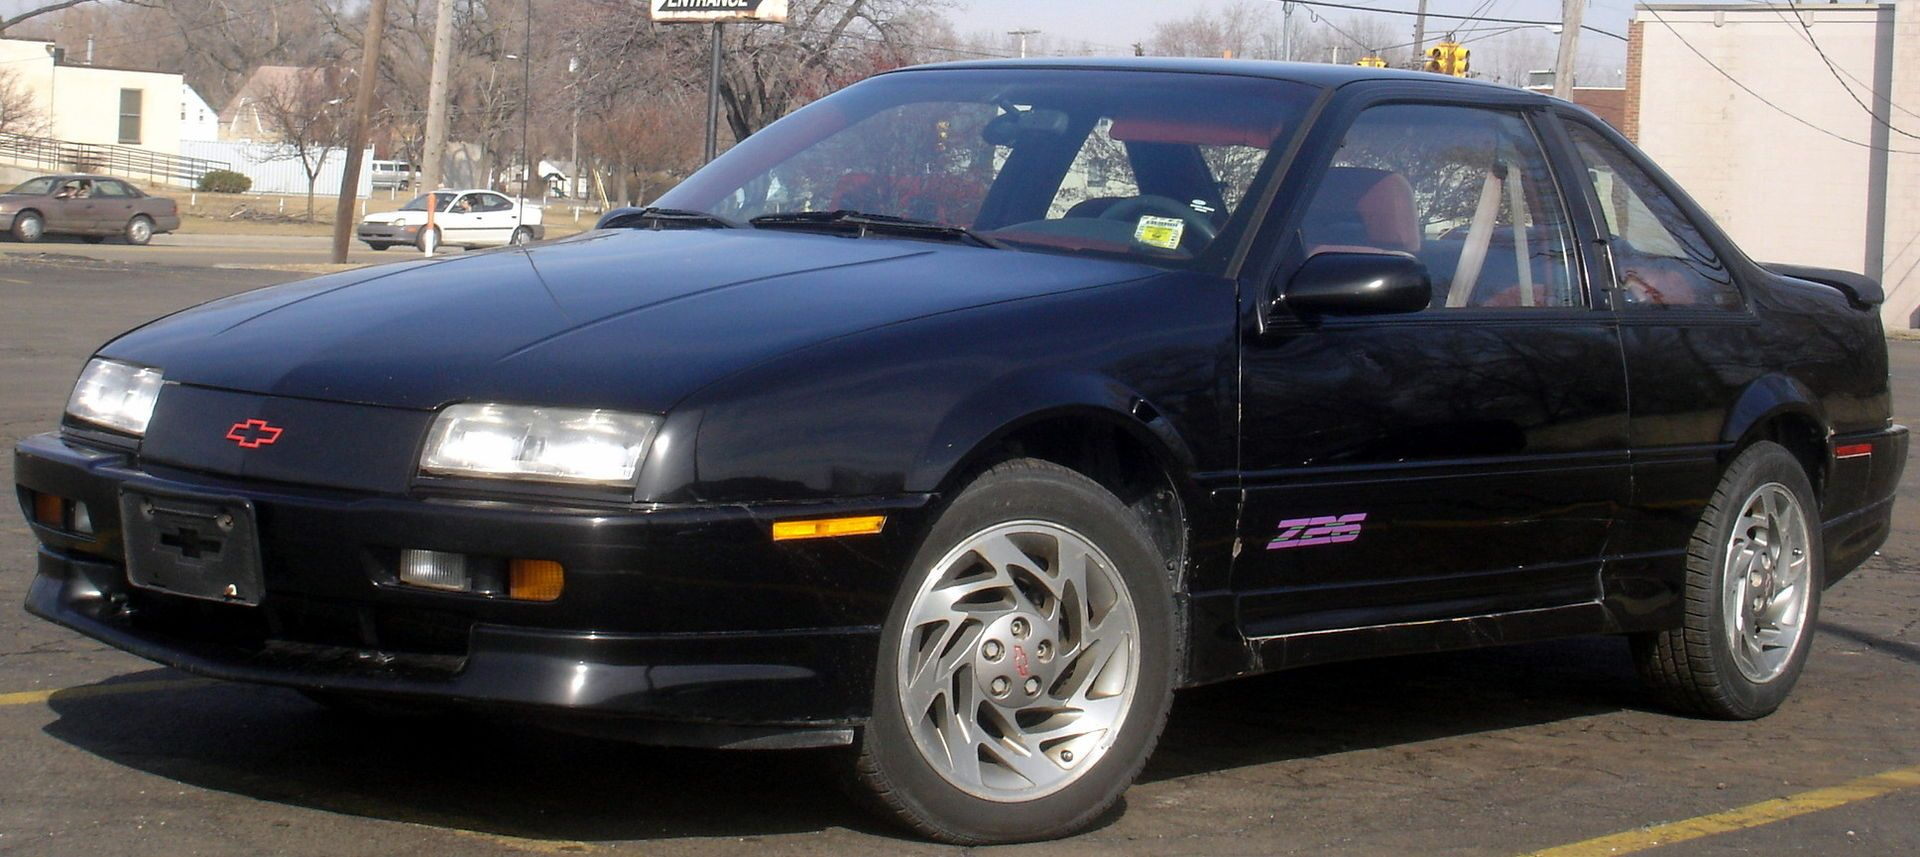 1996 chevrolet beretta 2 dr z26 coupe wow did i love these cars my brother had a 1994 and later a 1996 the 94 eventually became mine